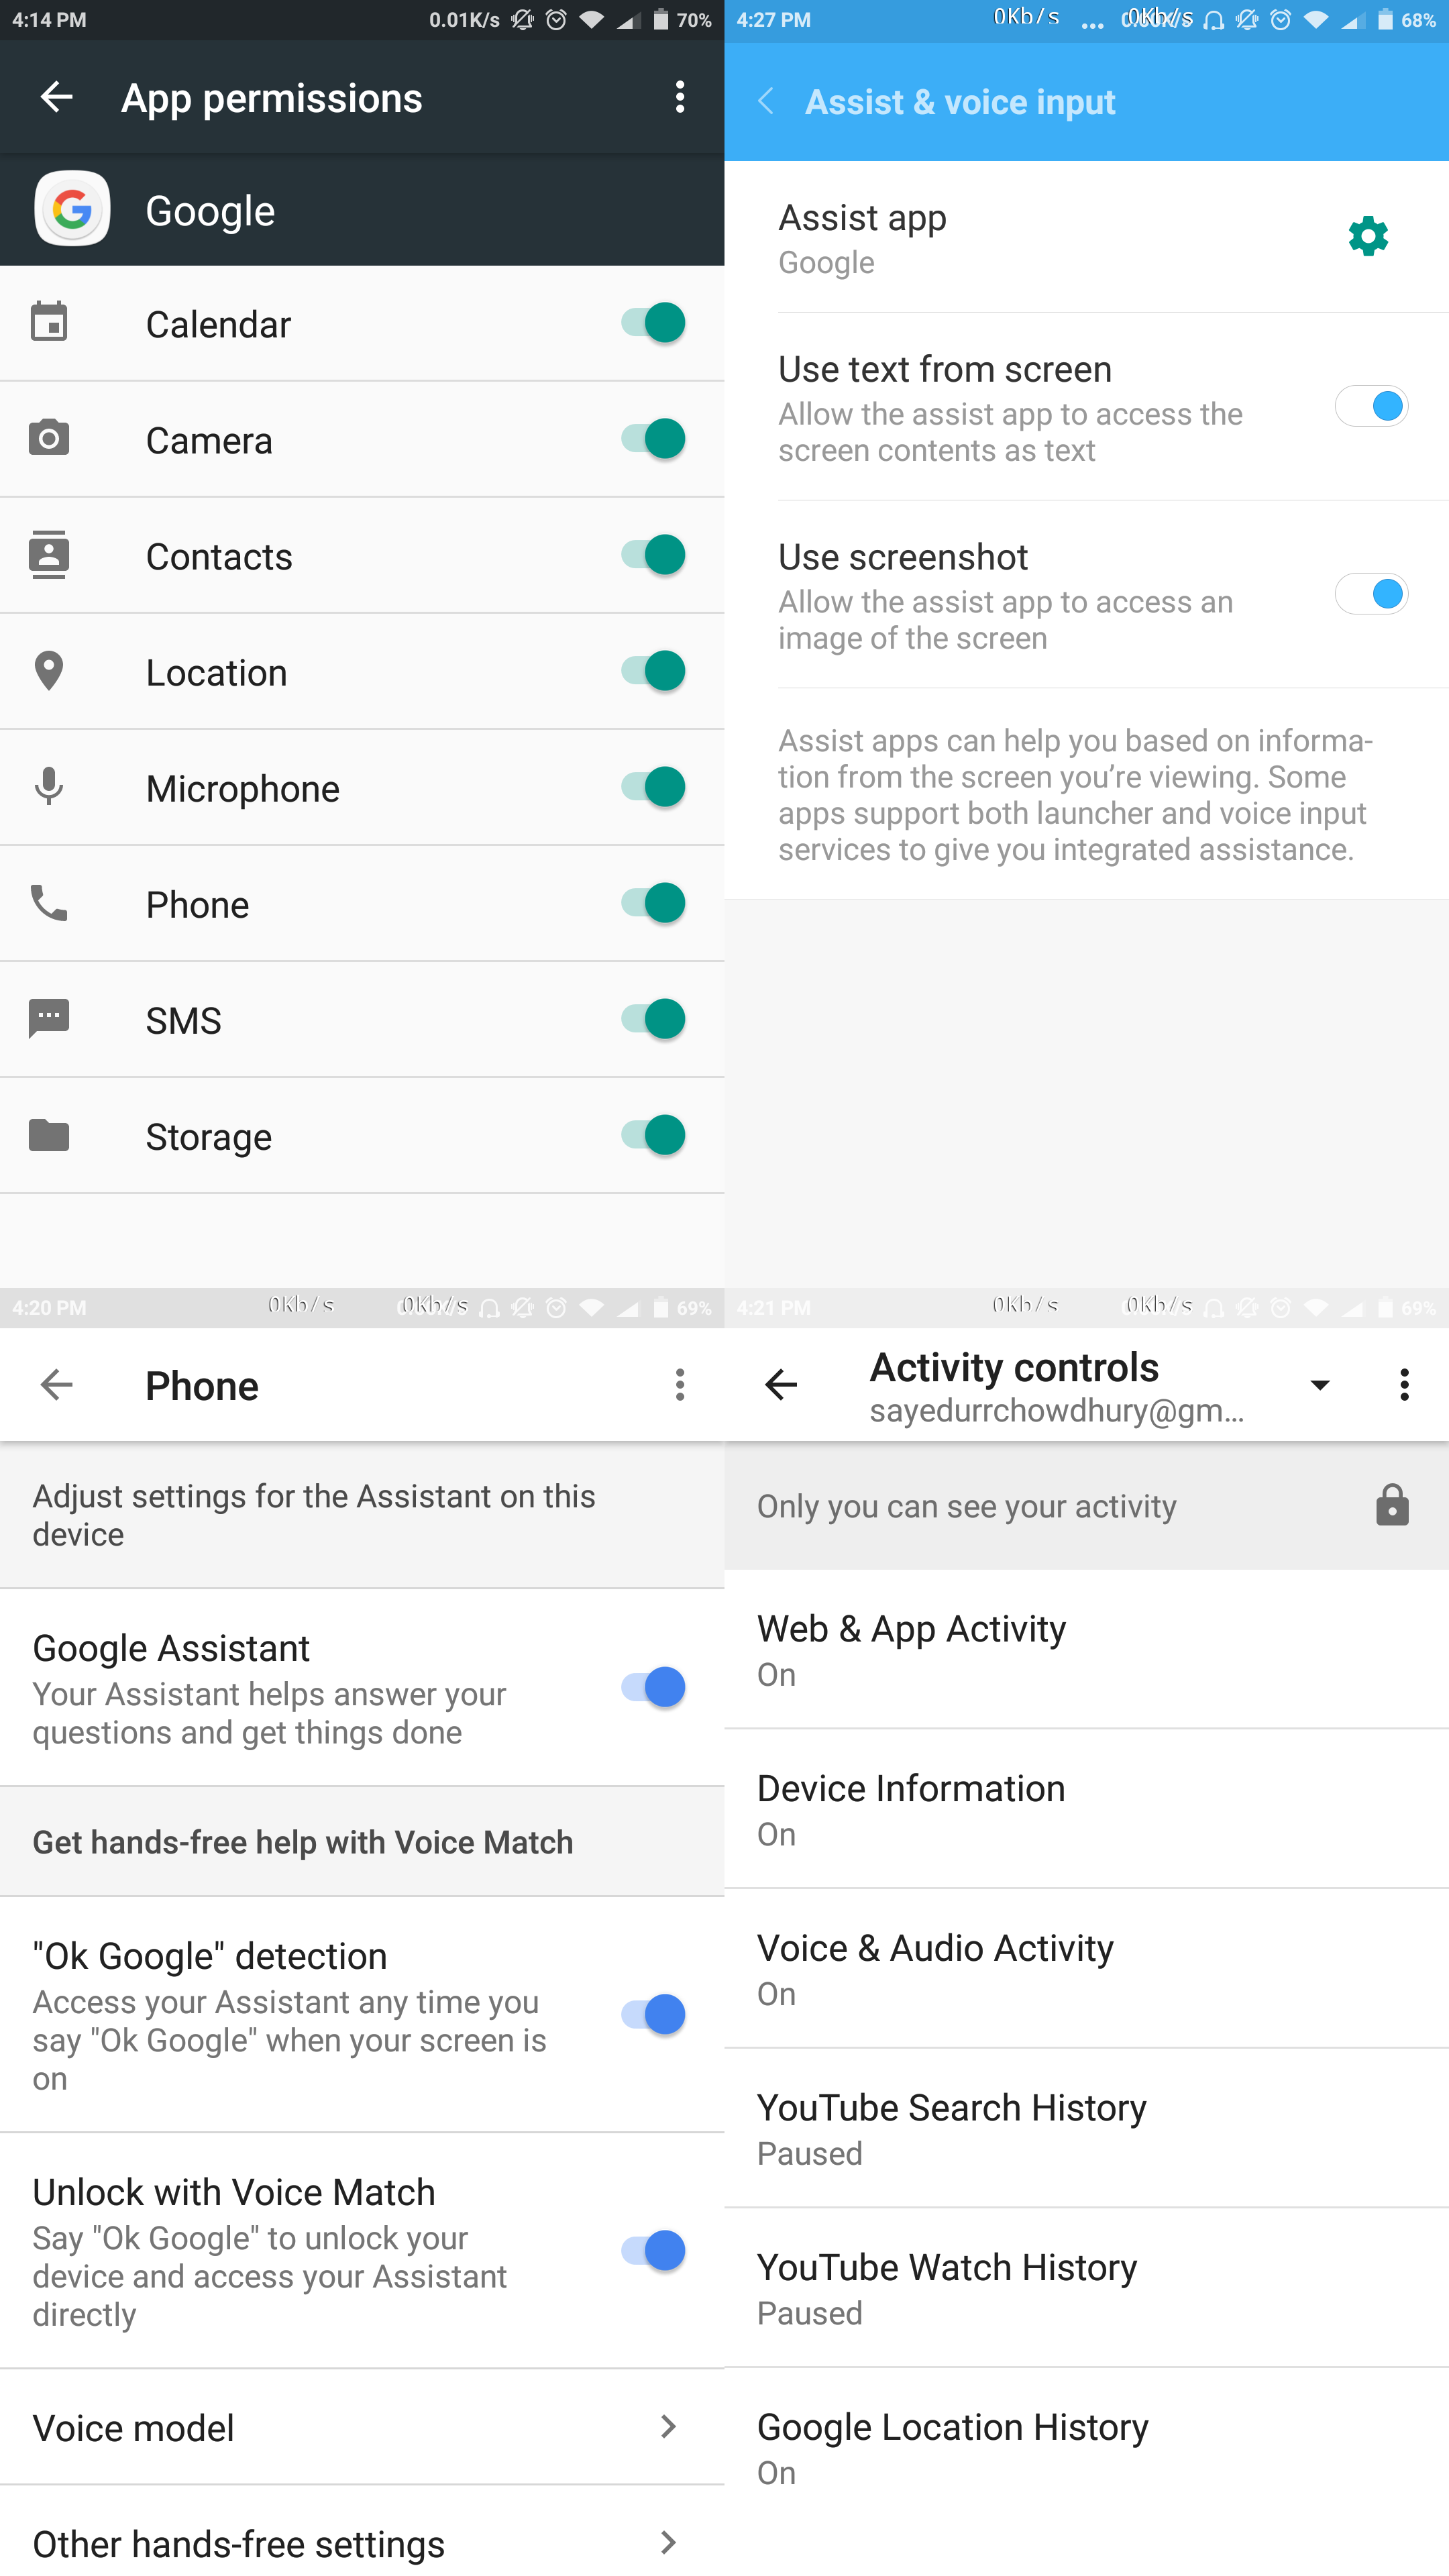 Google Now's Reminders, Customize and Your Feed grayed out